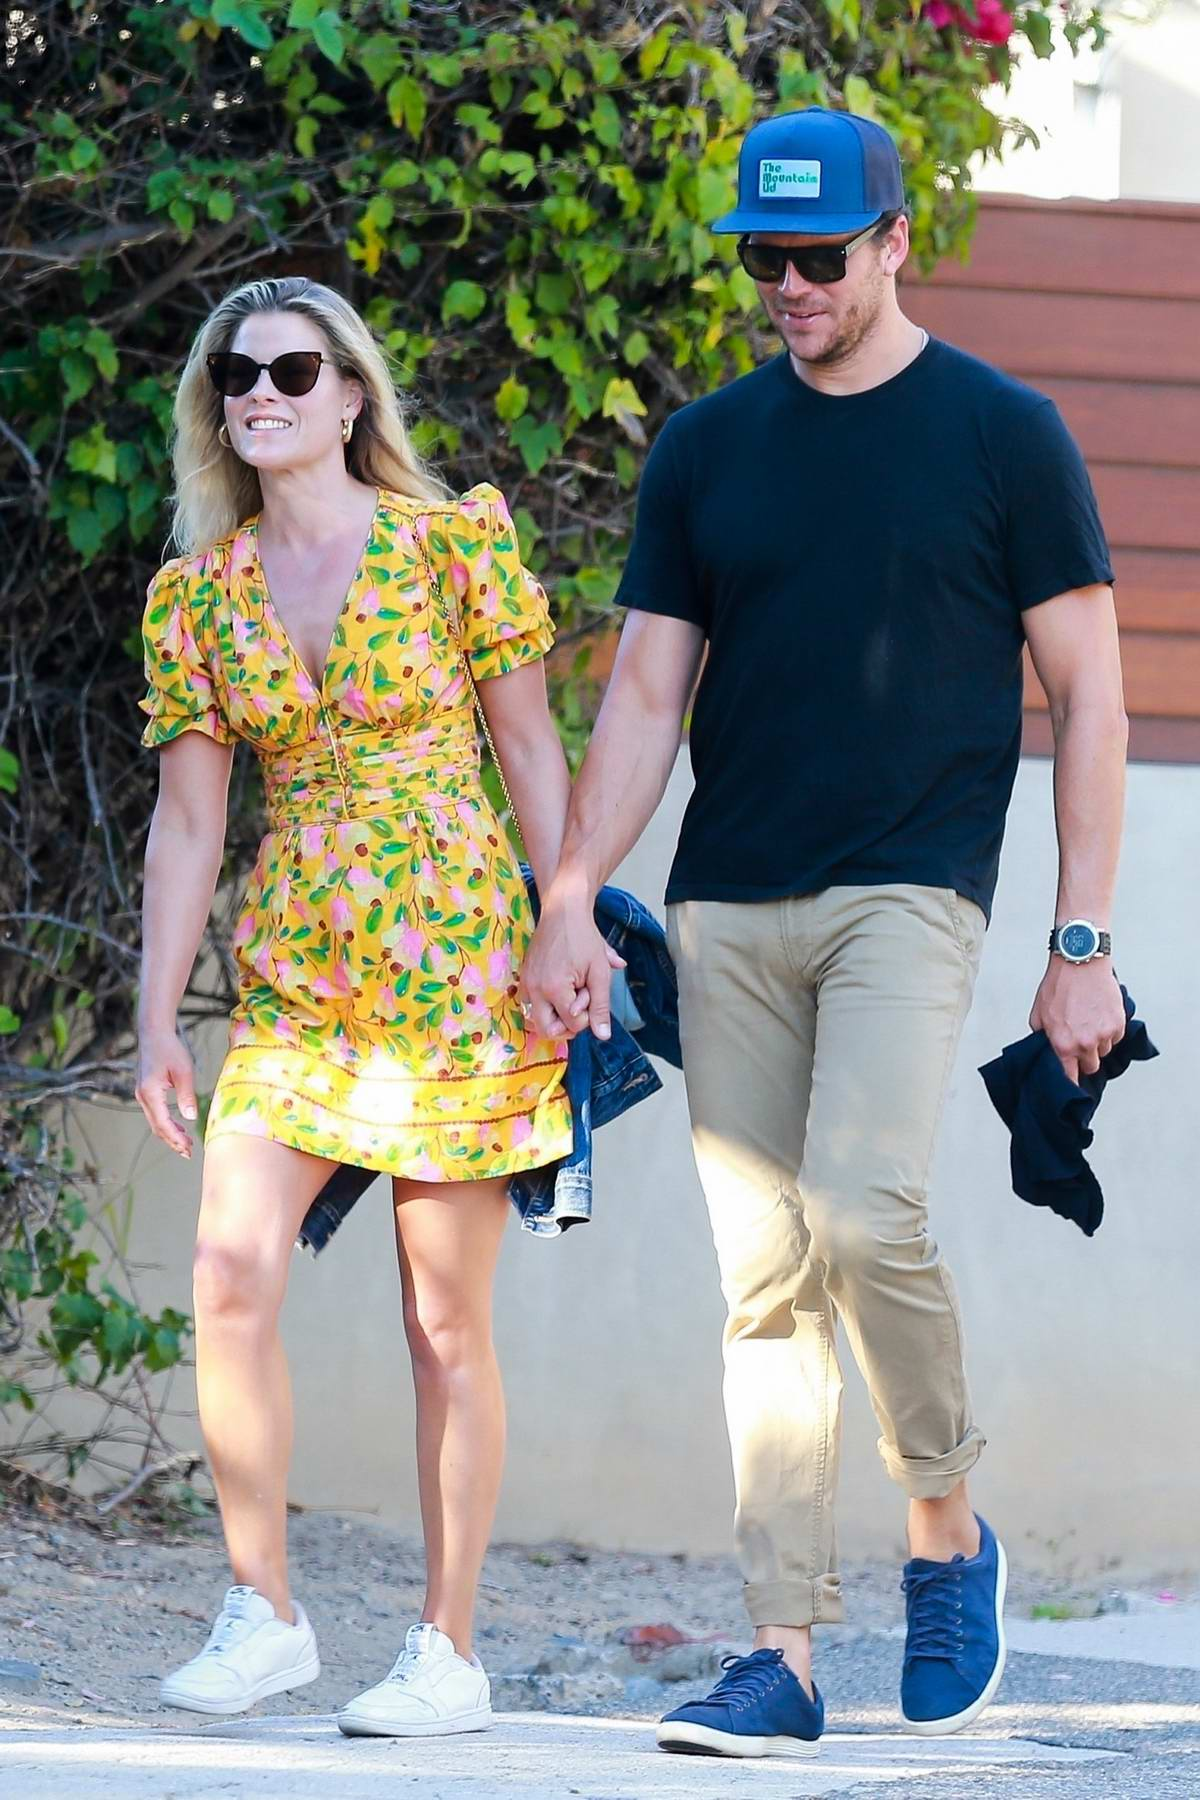 Ali Larter looks great in a floral print dress while on her way to a friend's house in Malibu, California